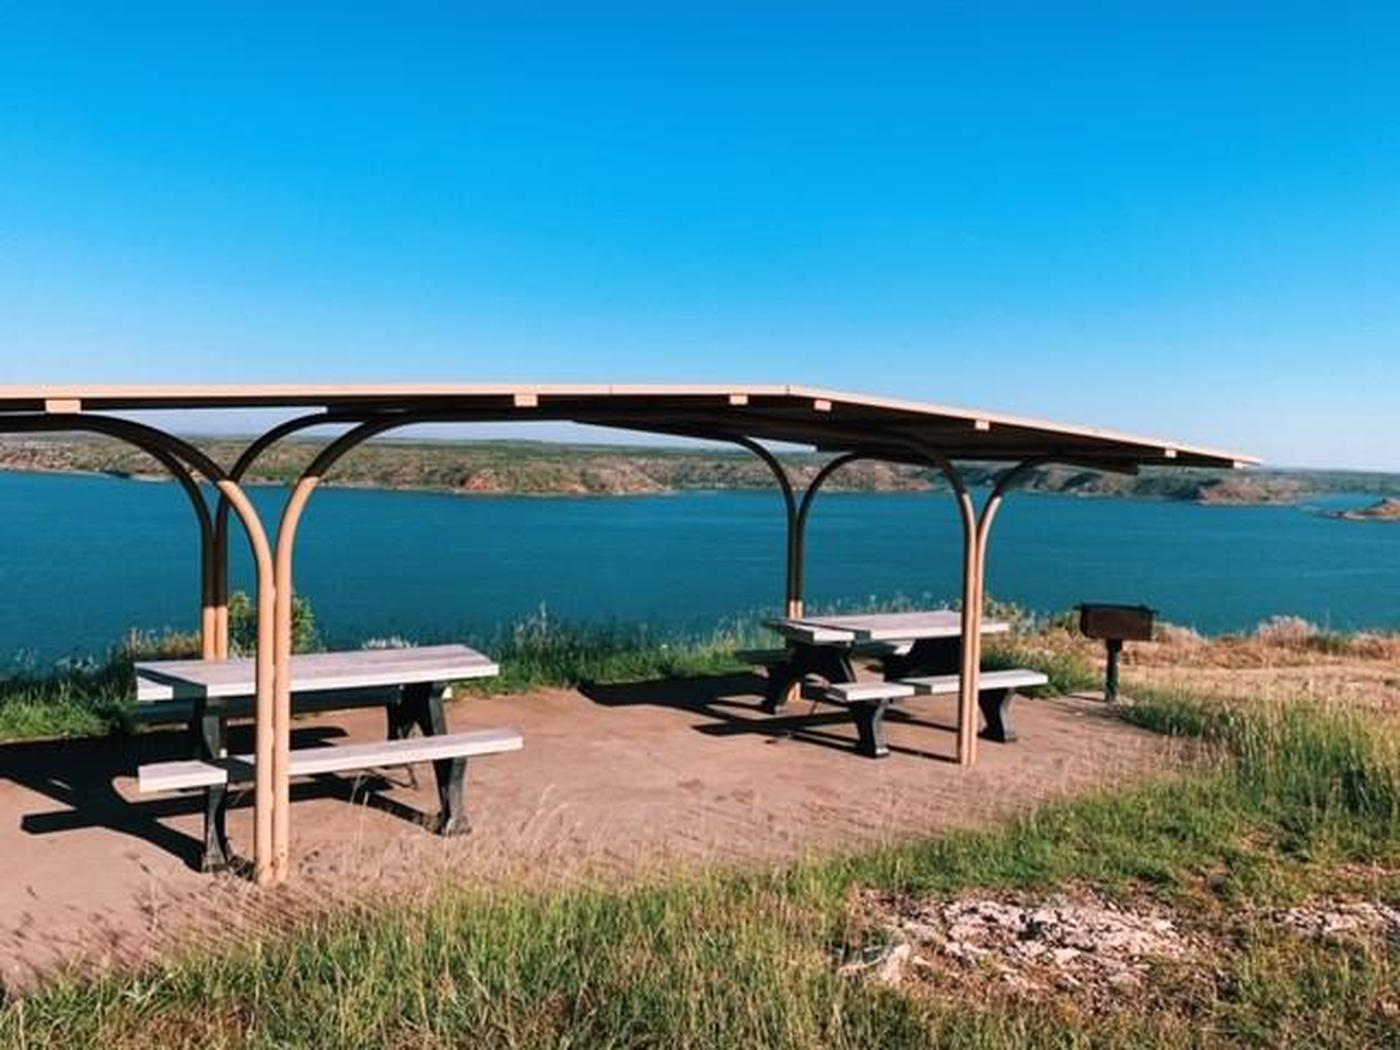 Fritch Fortress CampgroundFritch Fortress Campground overlooks Lake Meredith.